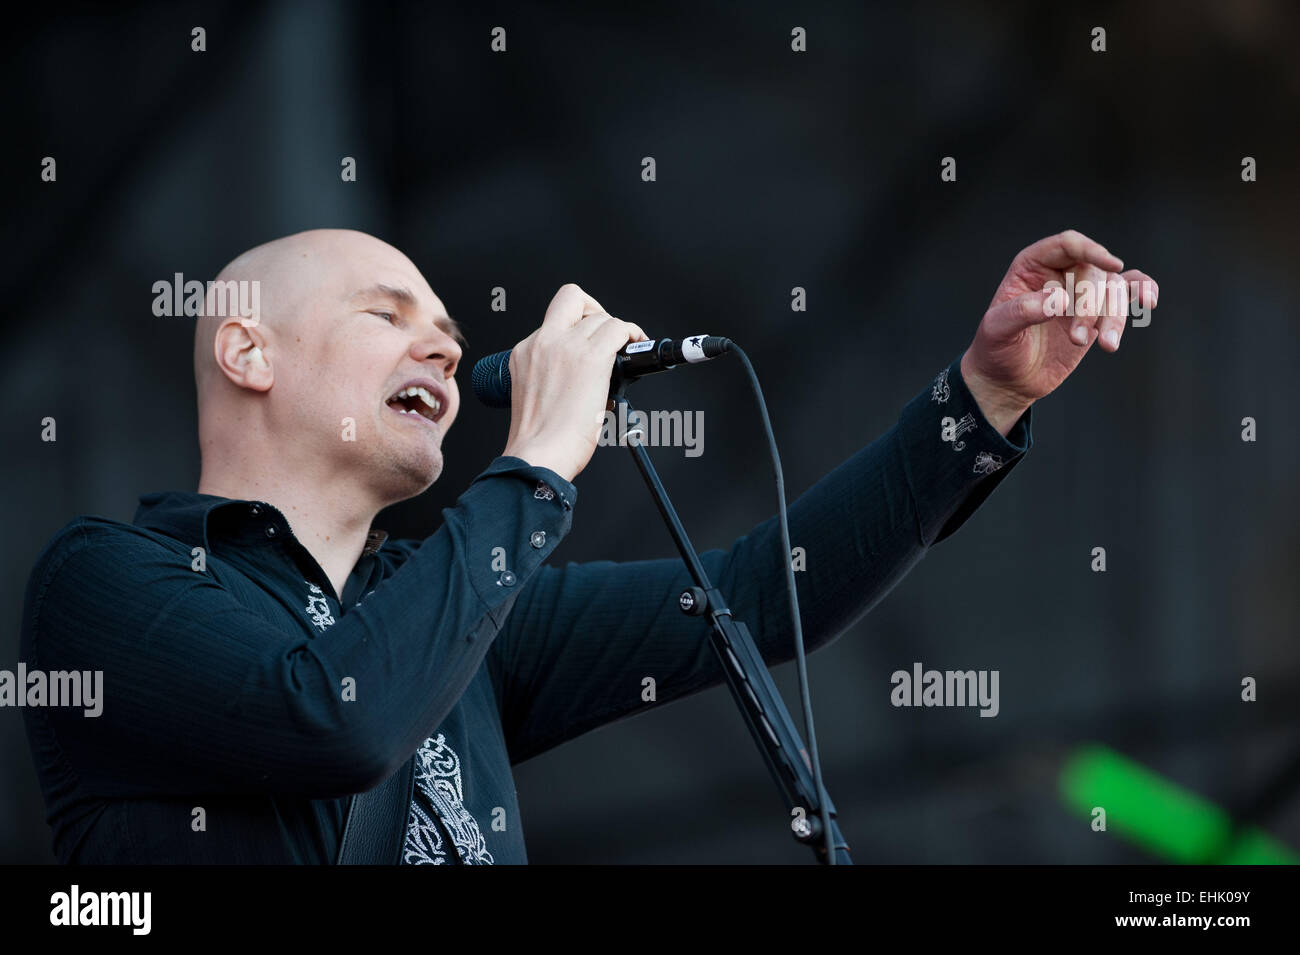 Santiago, Chile. 14th Mar, 2015. A member of the U.S. band 'The Smashing Pumpkins', performs during the - Stock Image